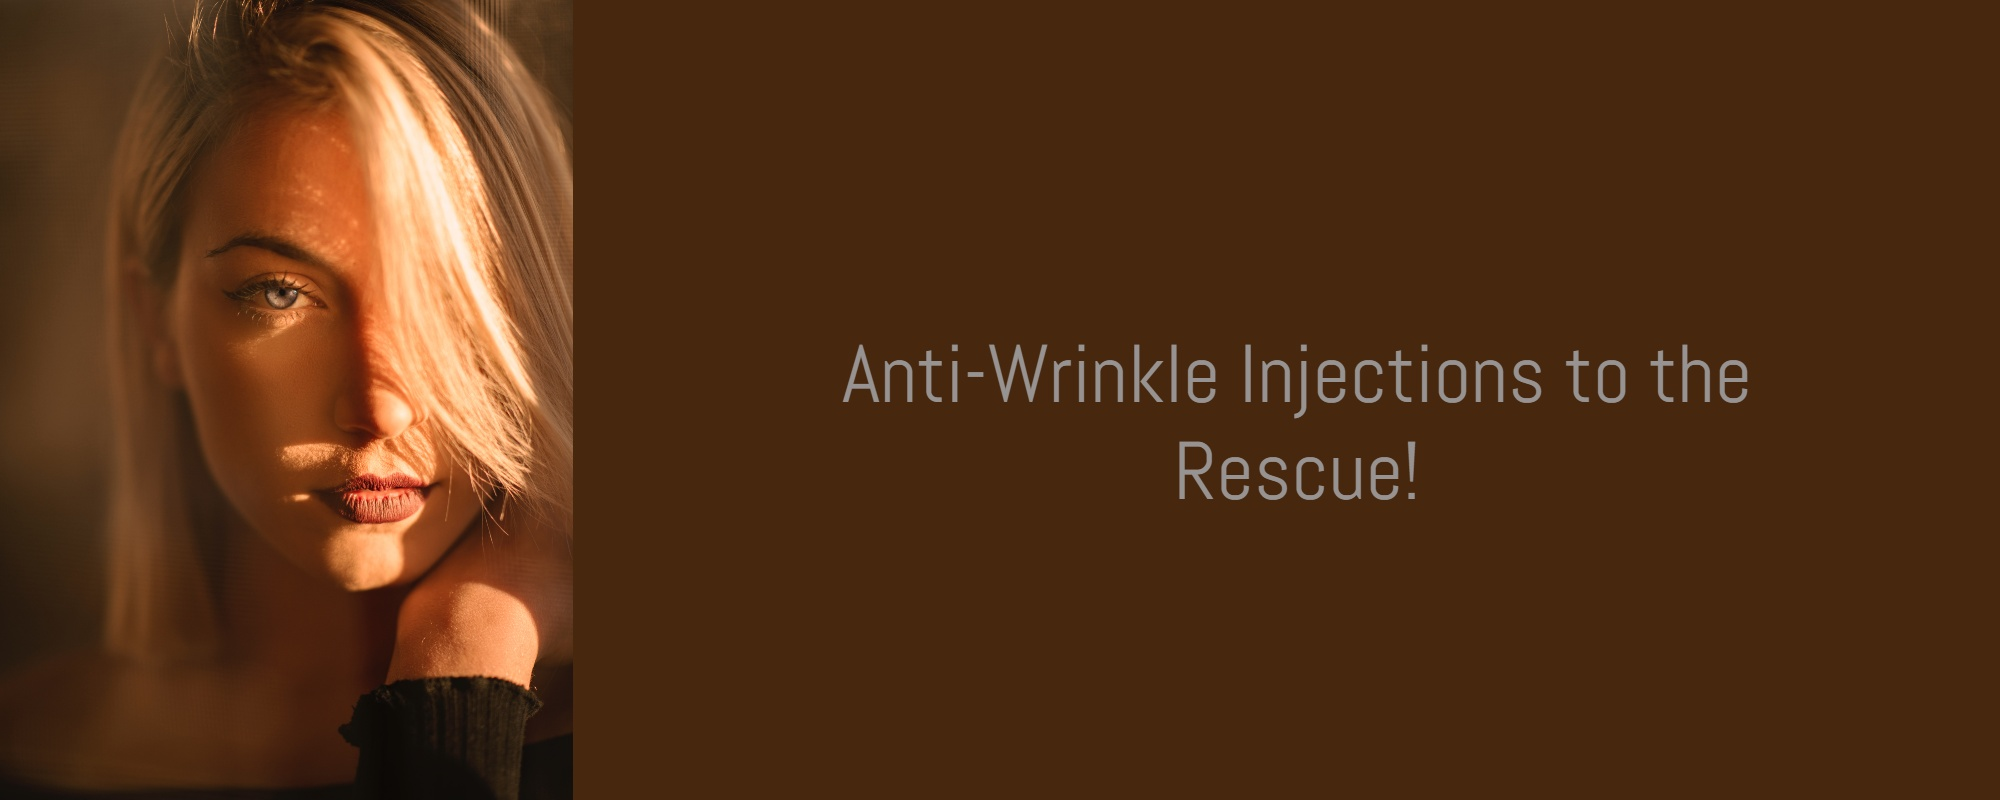 Anti-wrinkle Injections to the Rescue!